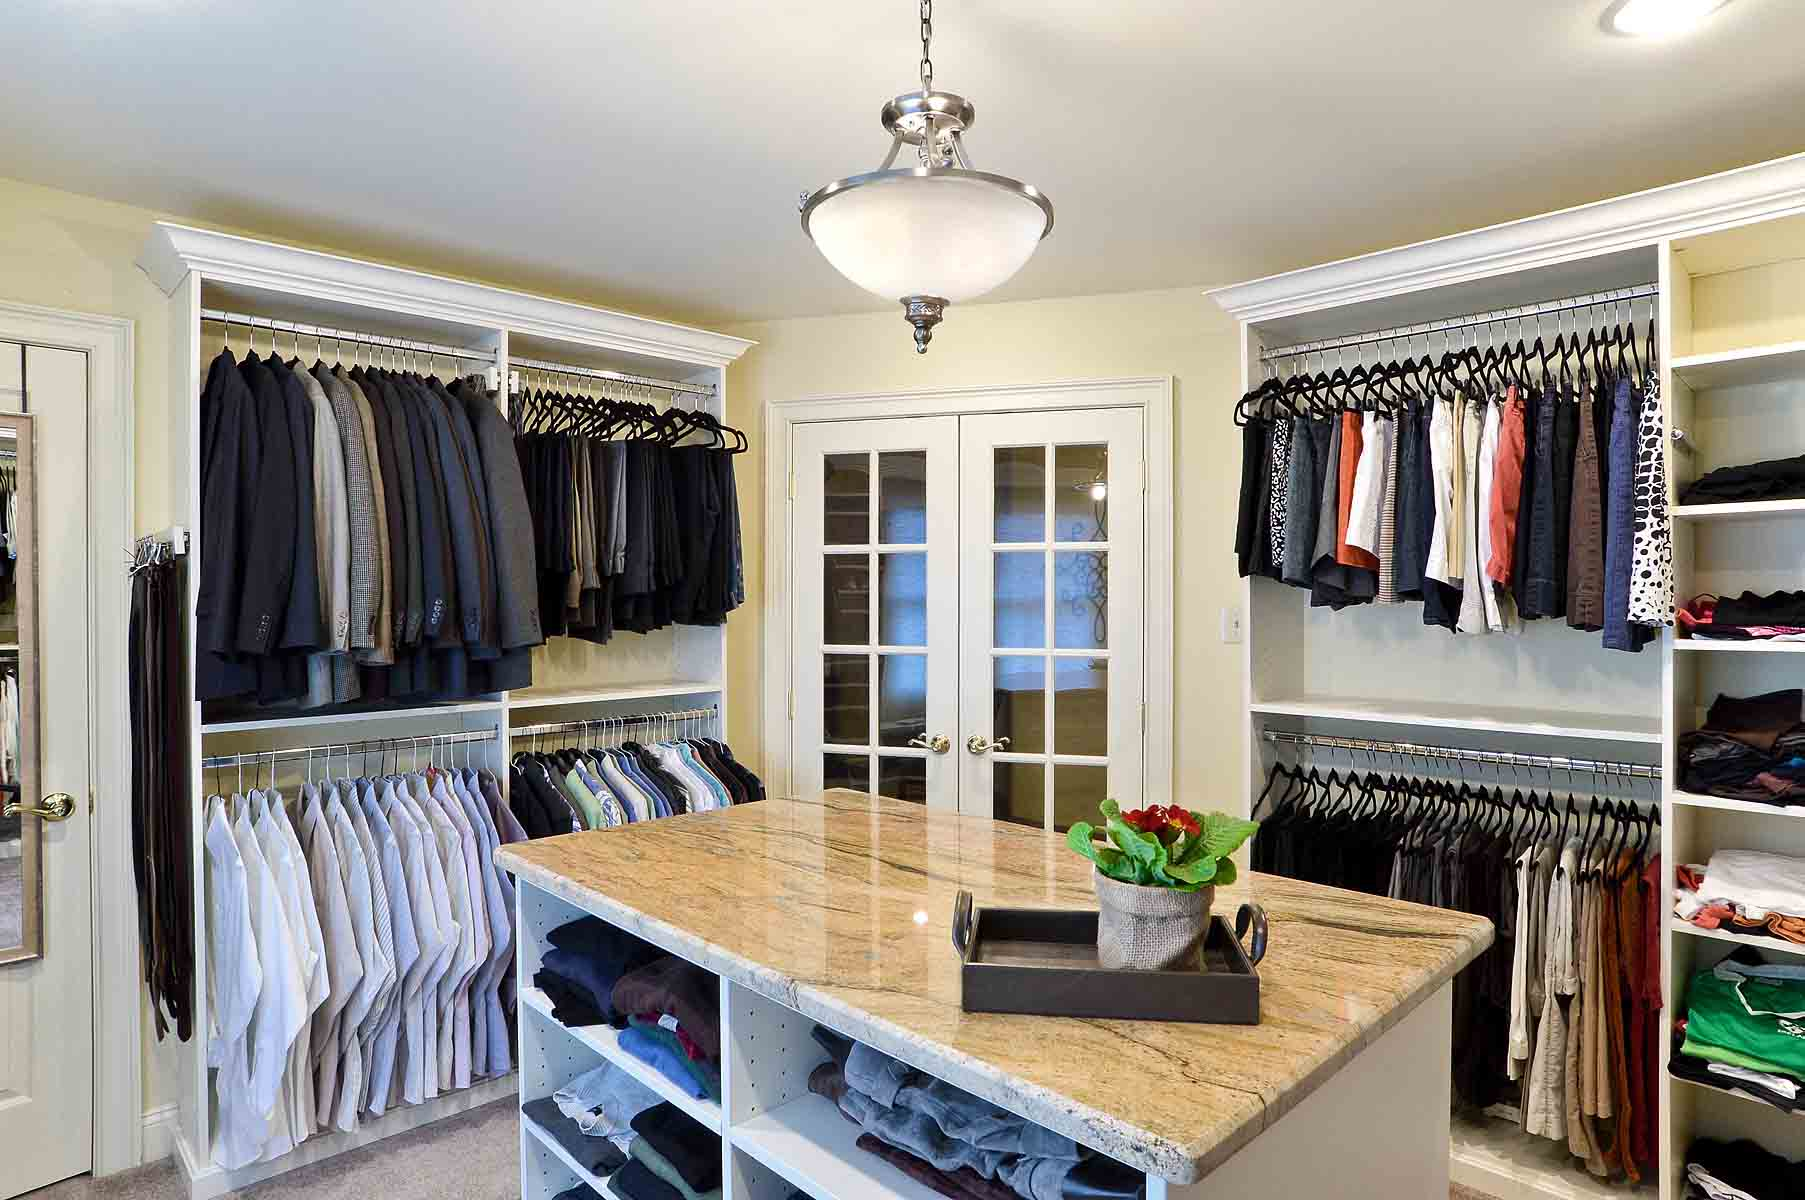 Walk In closet neatly organized